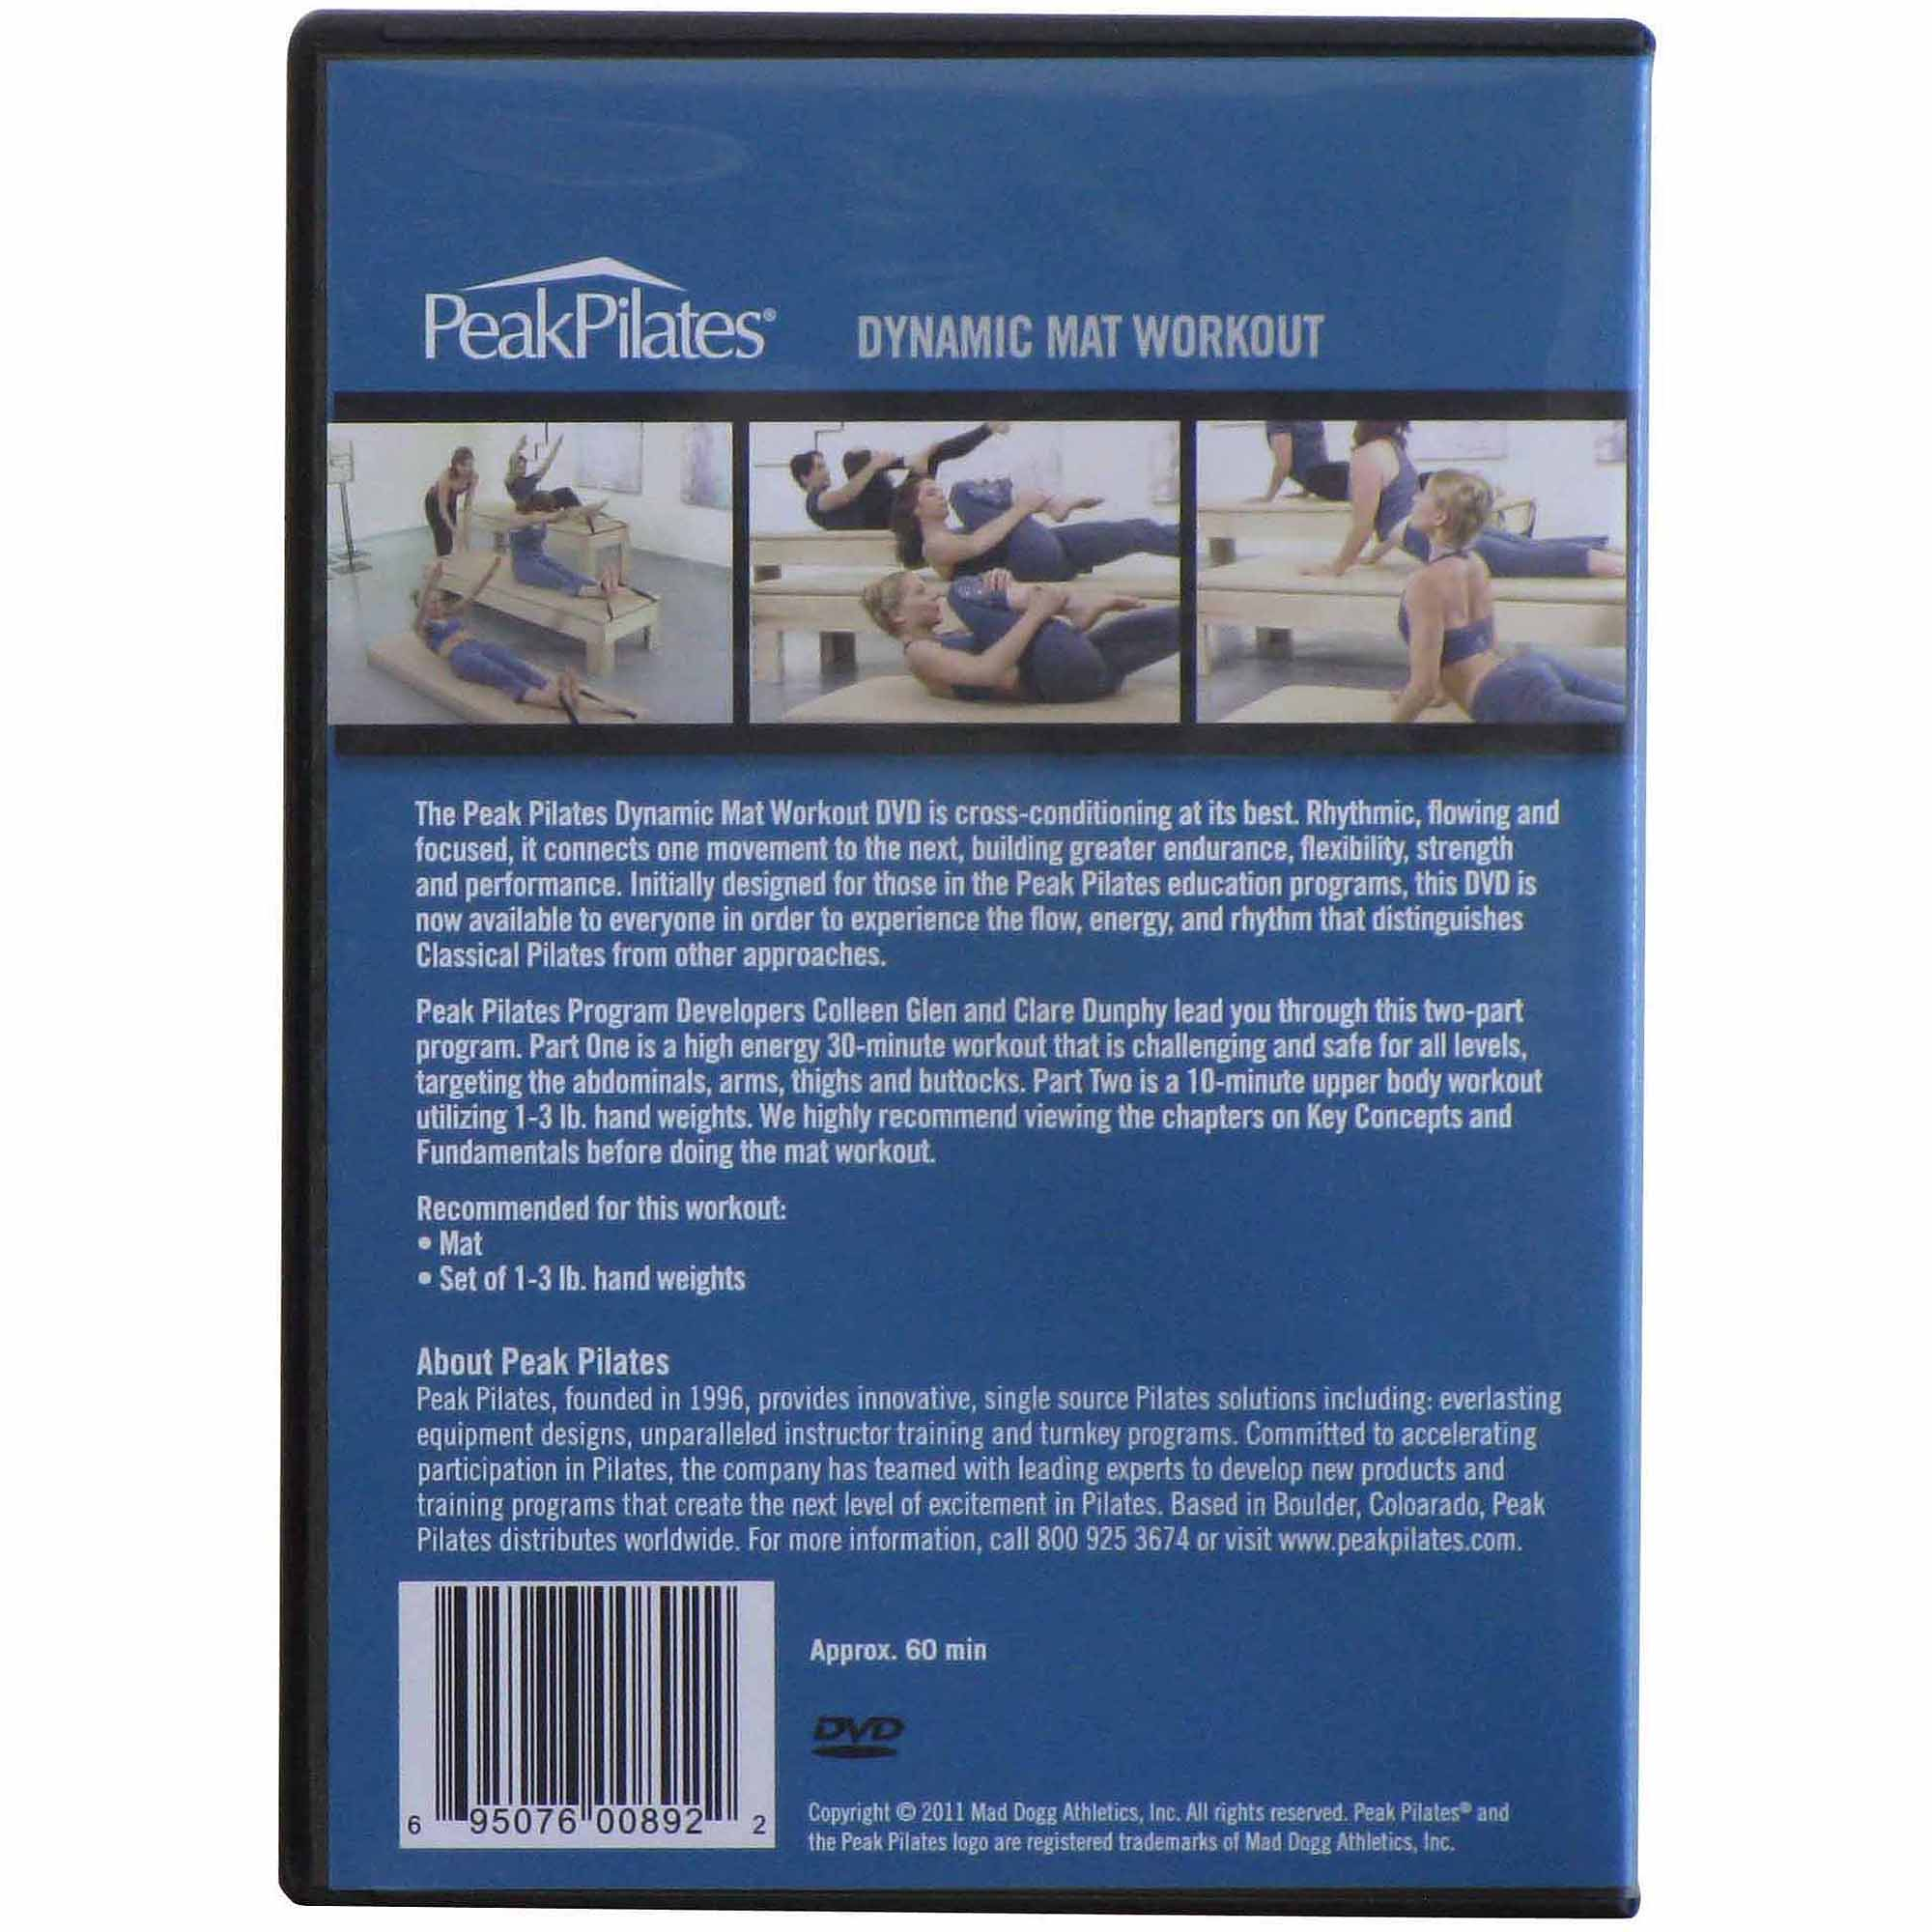 Peak Pilates Dynamic Mat Workout DVD